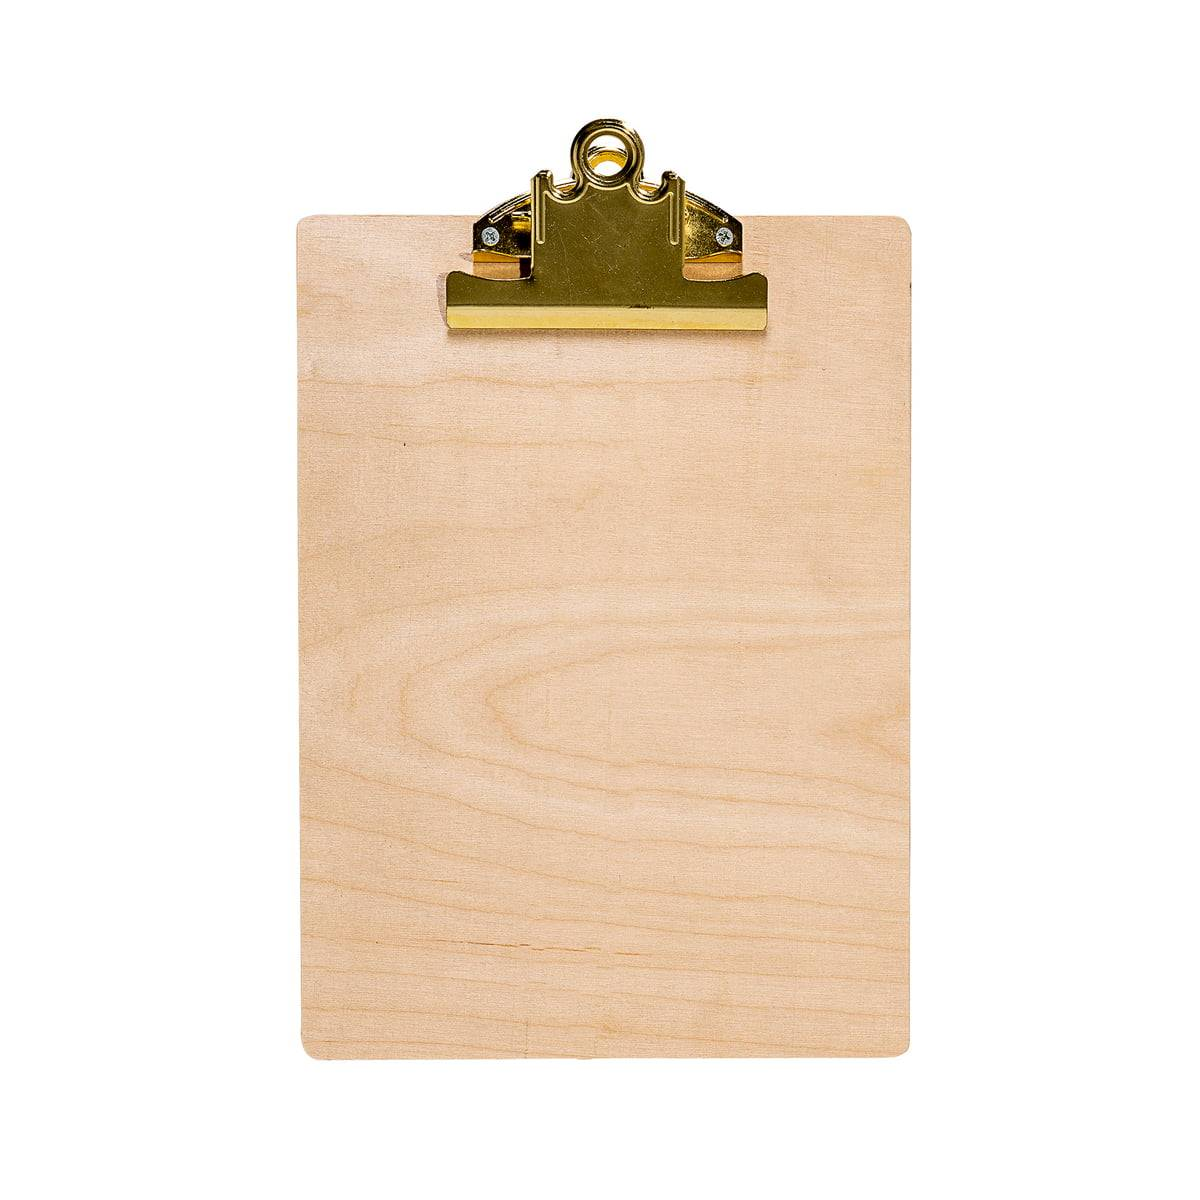 Bloomingville - Clipboard, gold